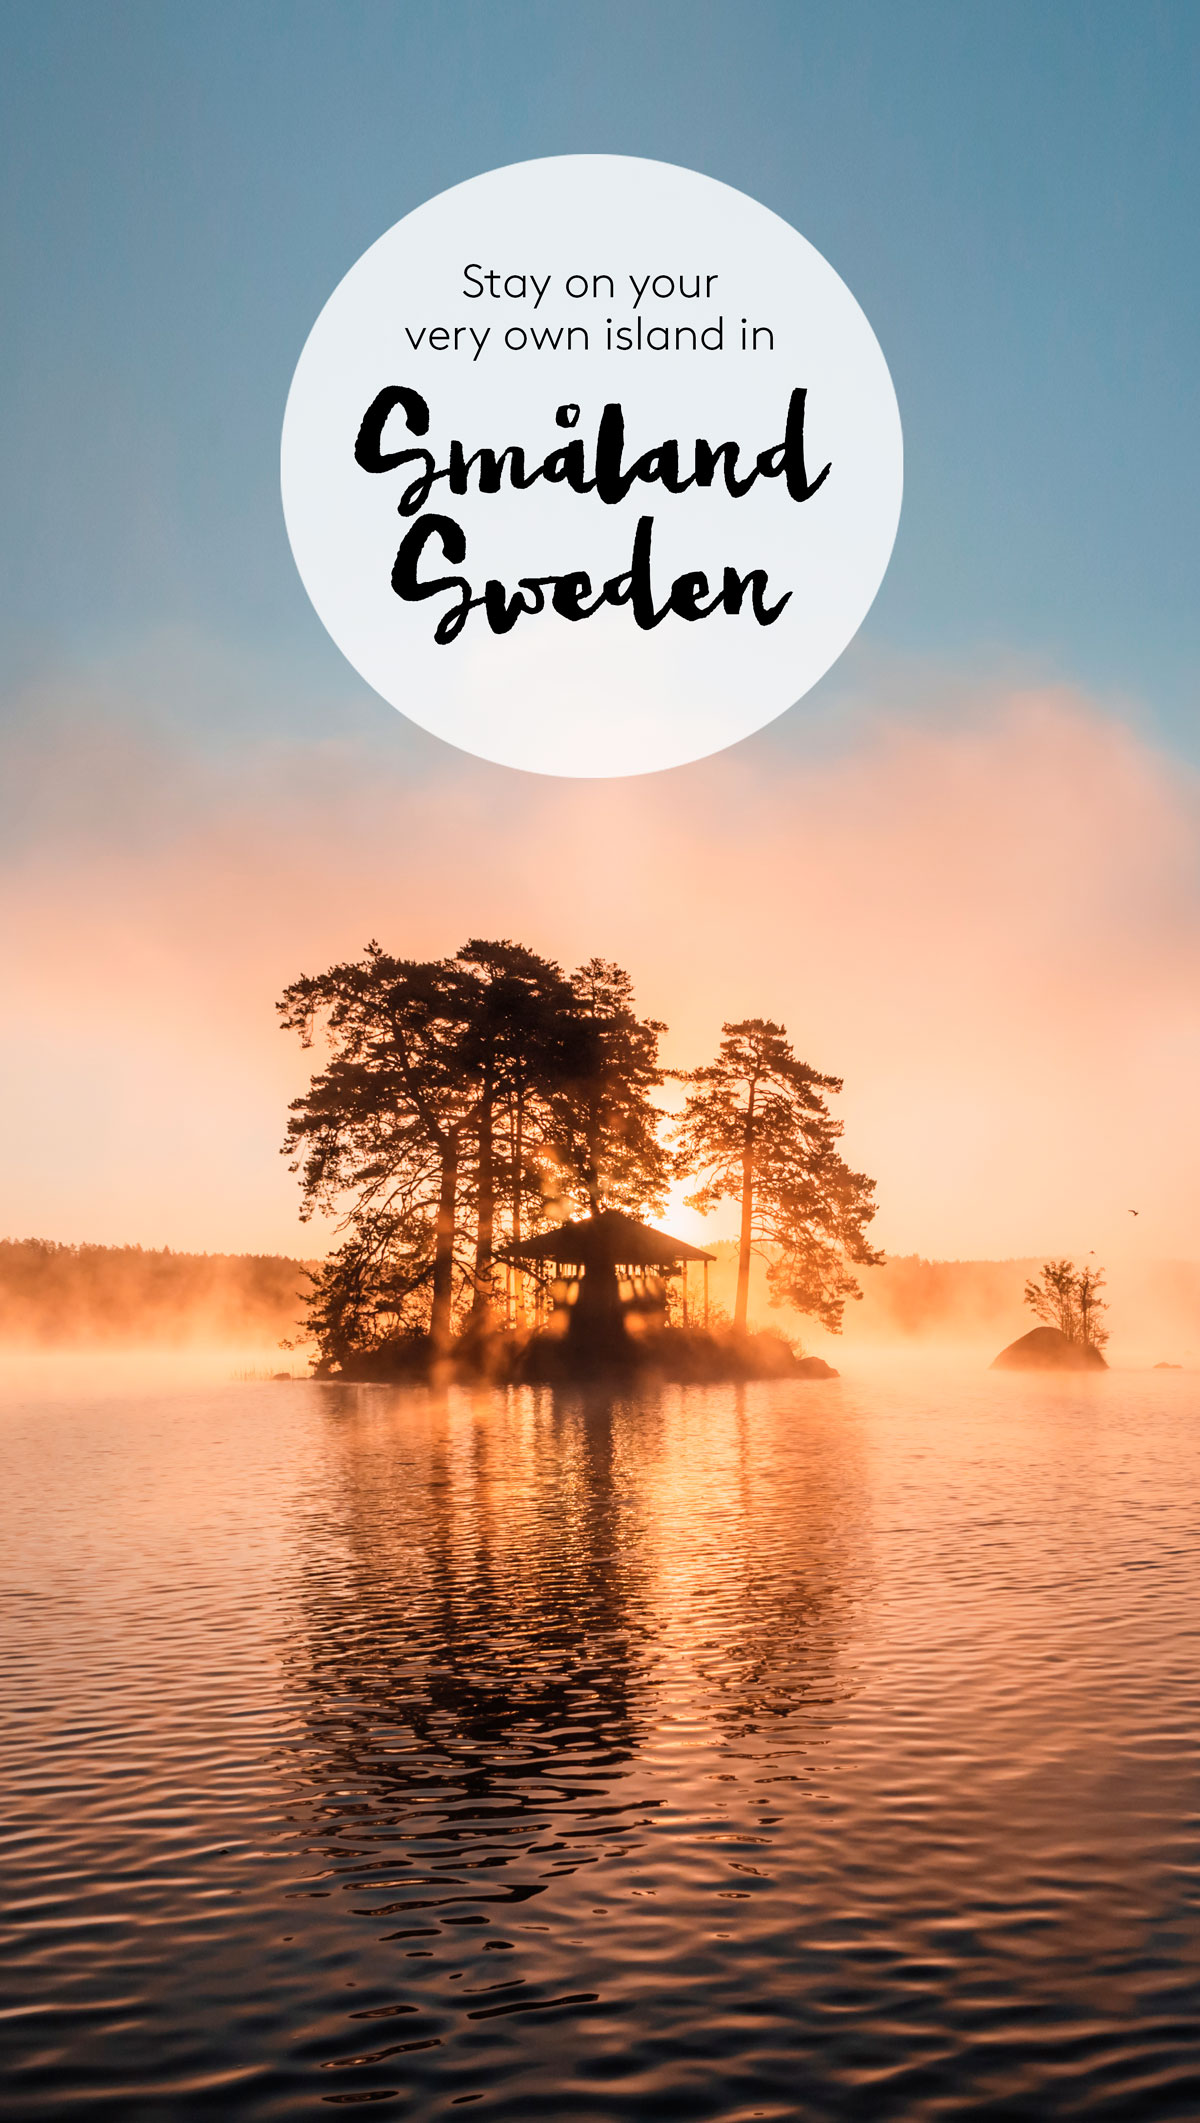 Småland Sweden / stay in your very own island